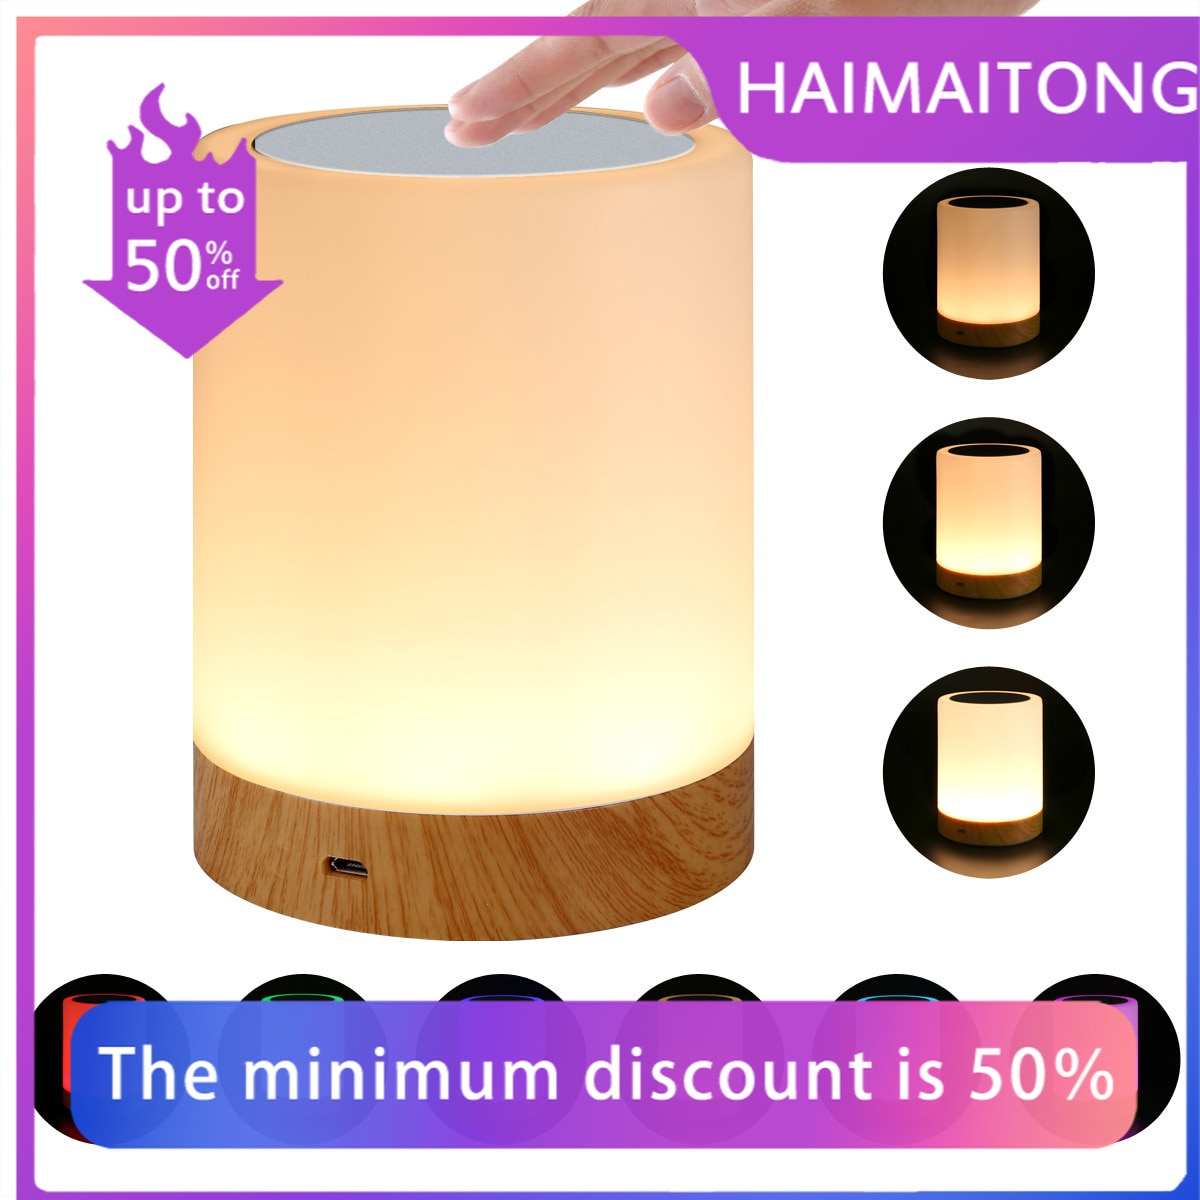 New LED colorful creative wood grain rechargeable night light gift bedside lamp table lamp touch pat atmosphere light 24cm big moon lamp usb holiday atmosphere decorative sleeping table lamp touch bedside kids baby light creative gift chargeable